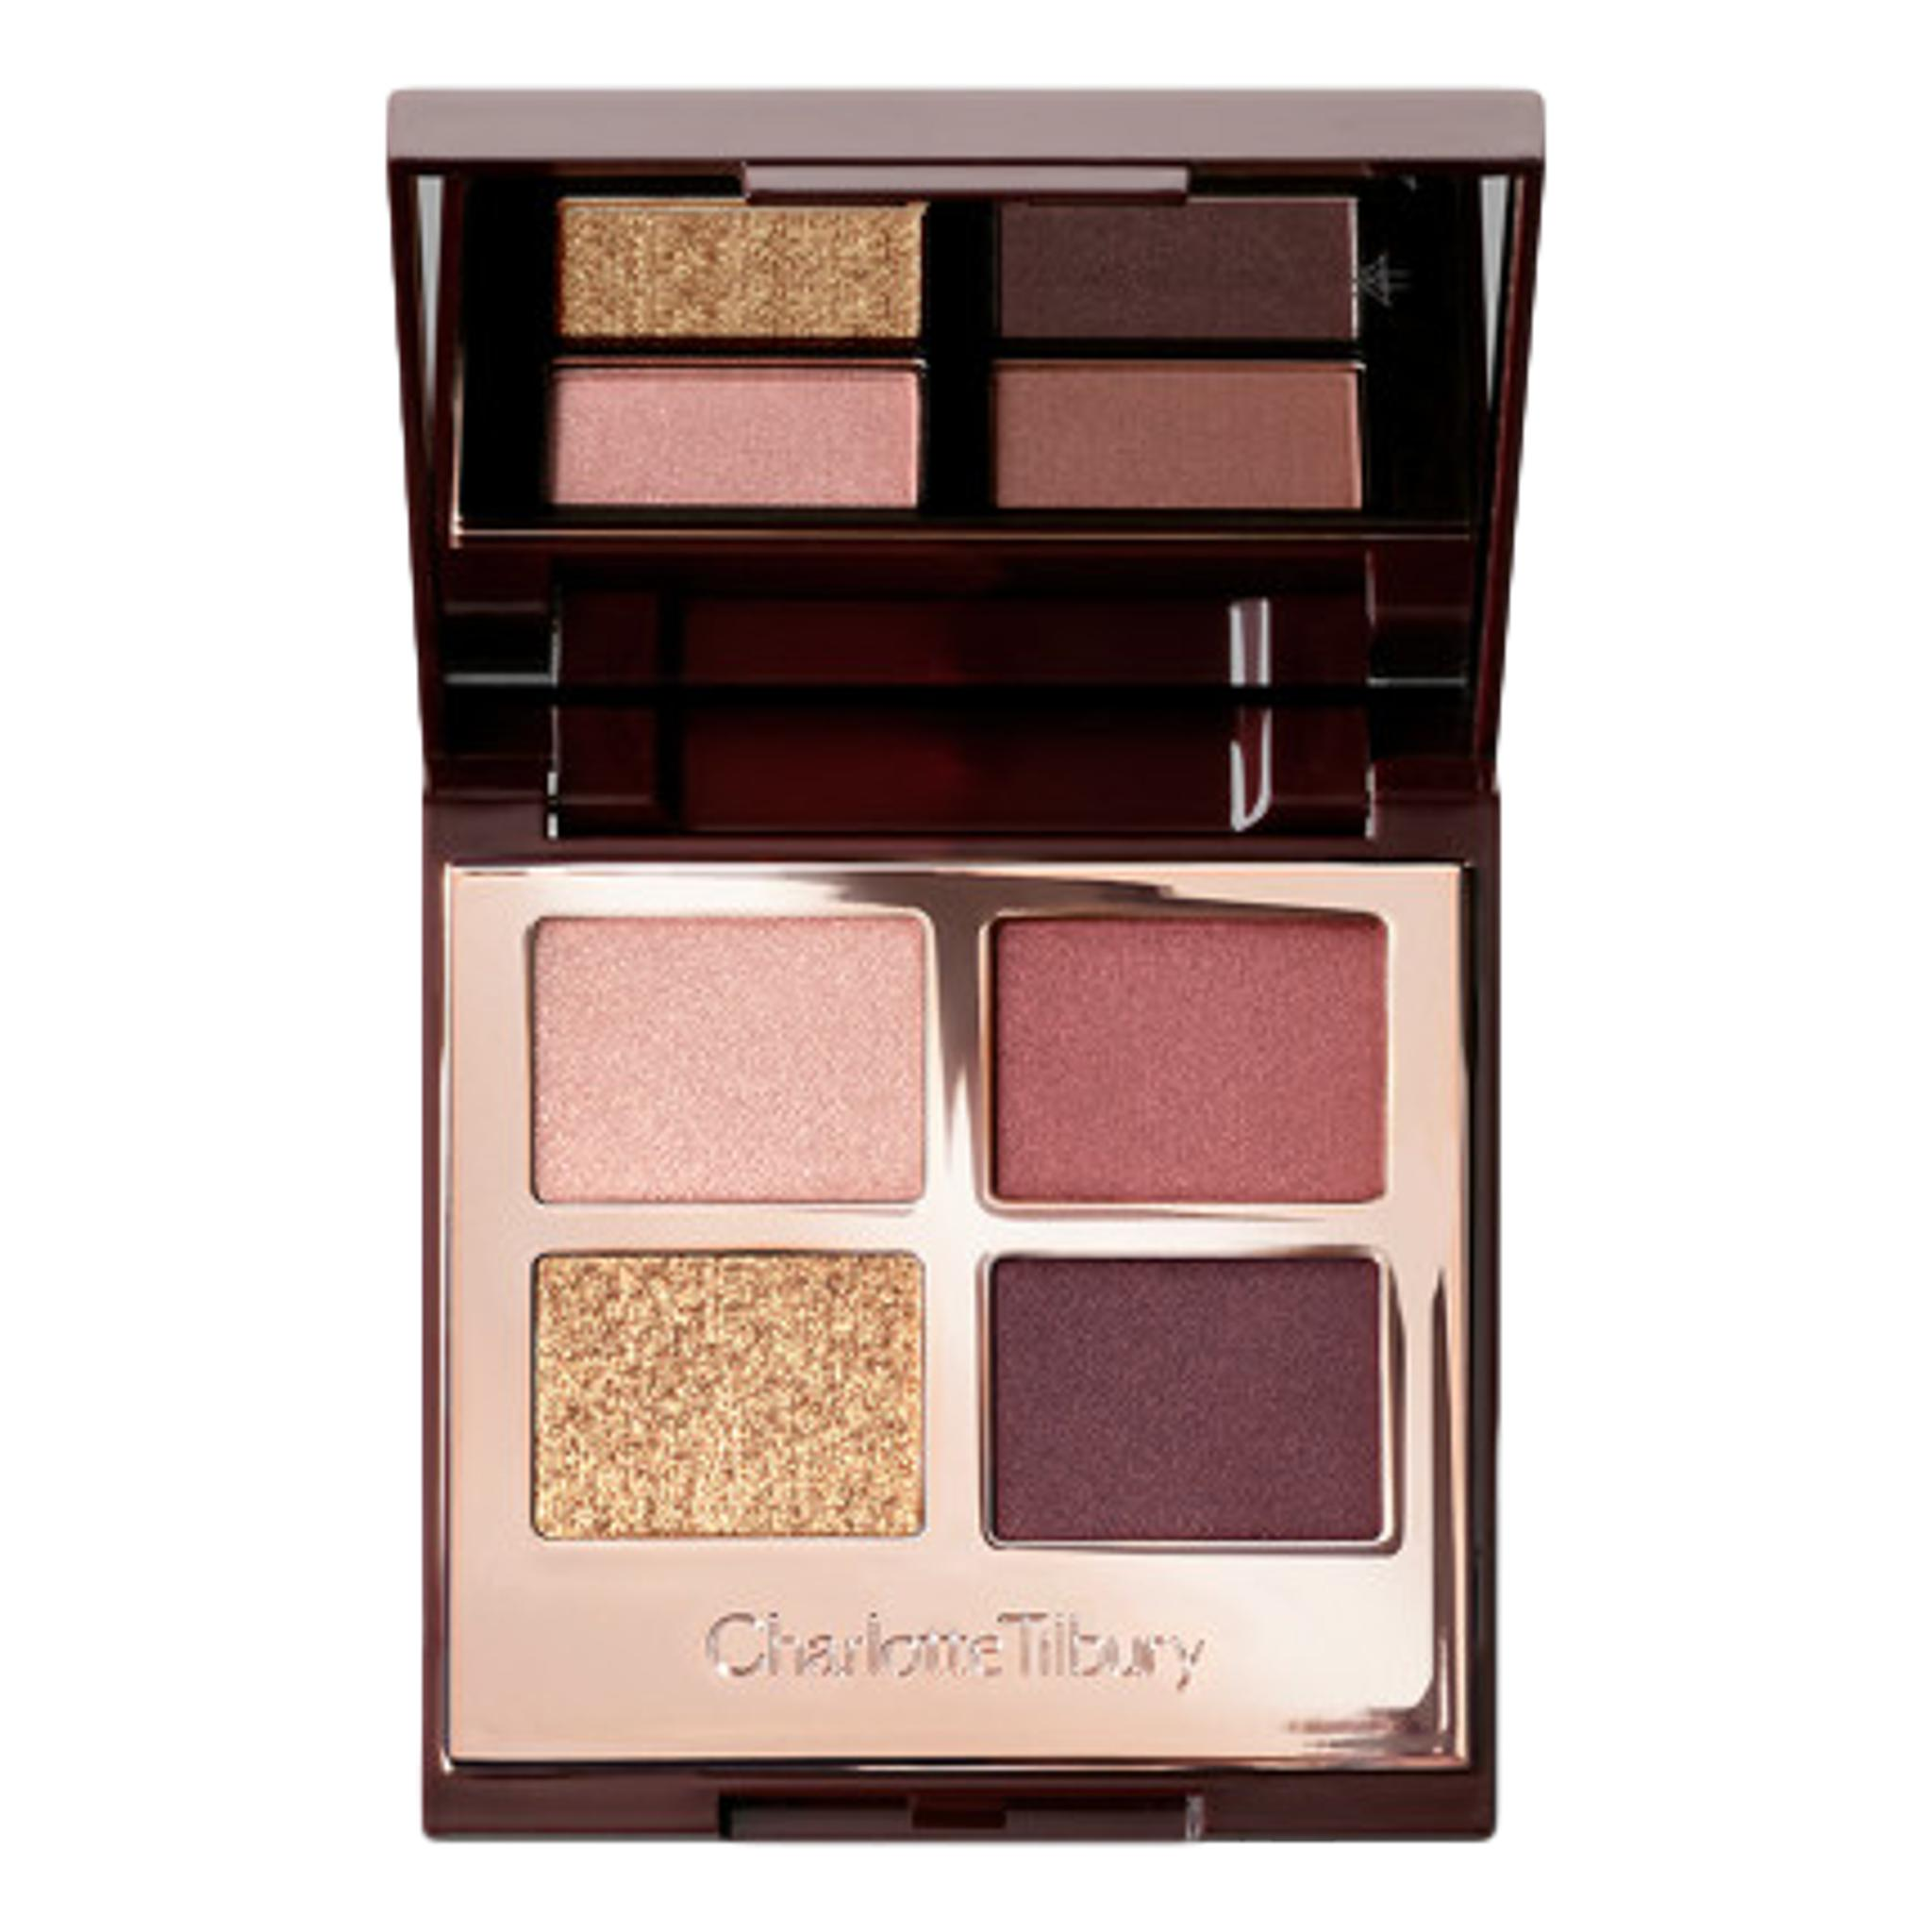 Charlotte Tilbury Luxury Eyeshadow Palette - The Vintage Vamp, eyeshadow palette, London Loves Beauty